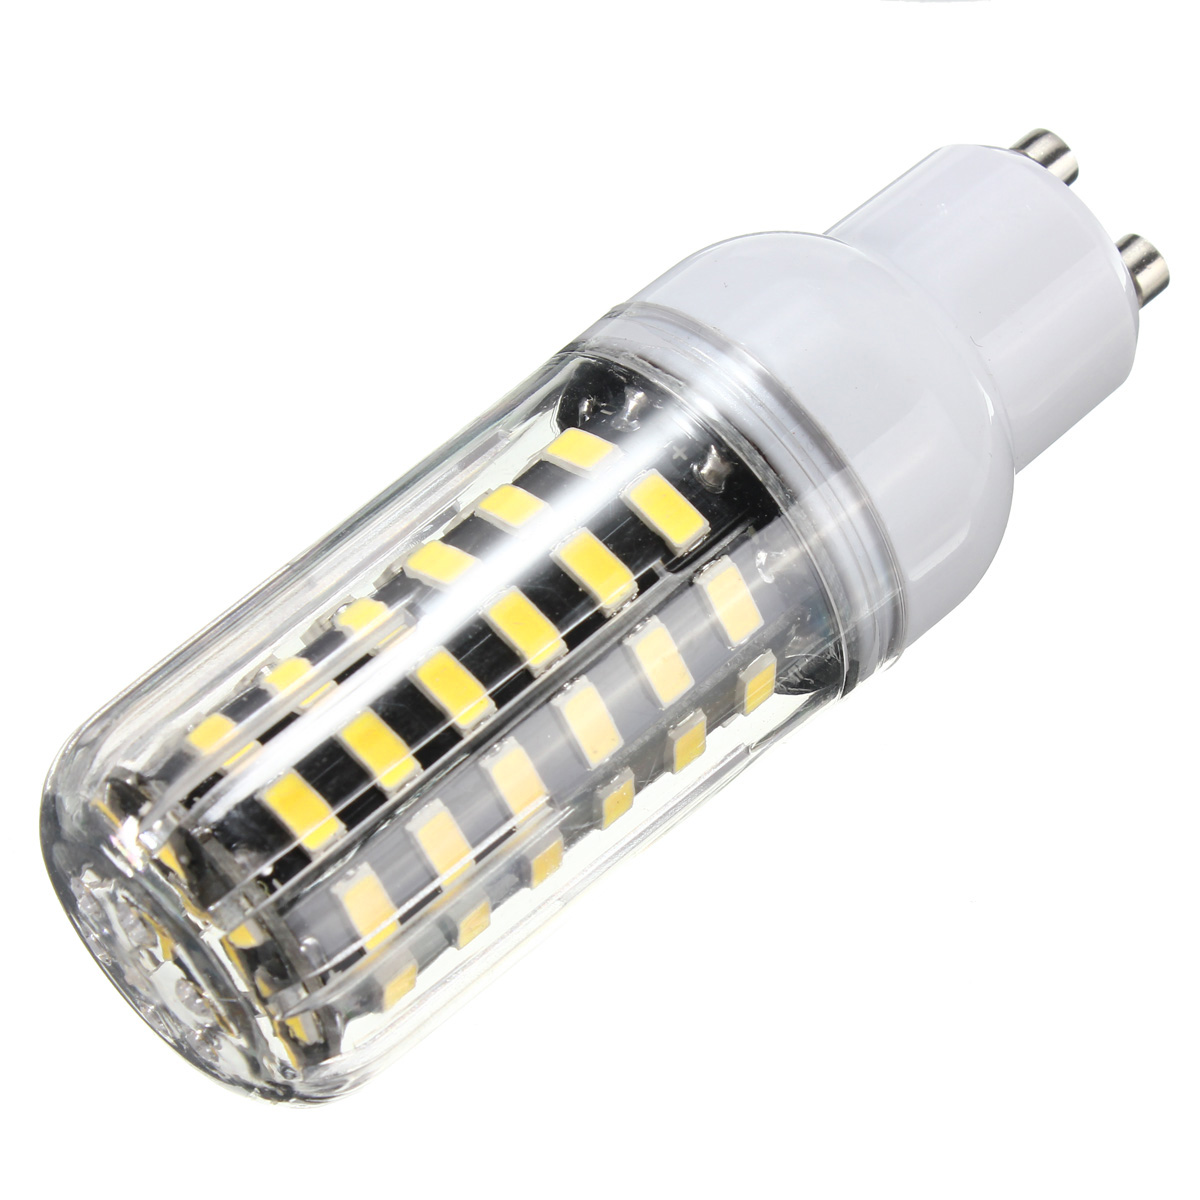 E27 E14 B22 G9 GU10 7W 64 SMD 5733 1000LM LED Warm White White Cover Corn Bulb AC 110V